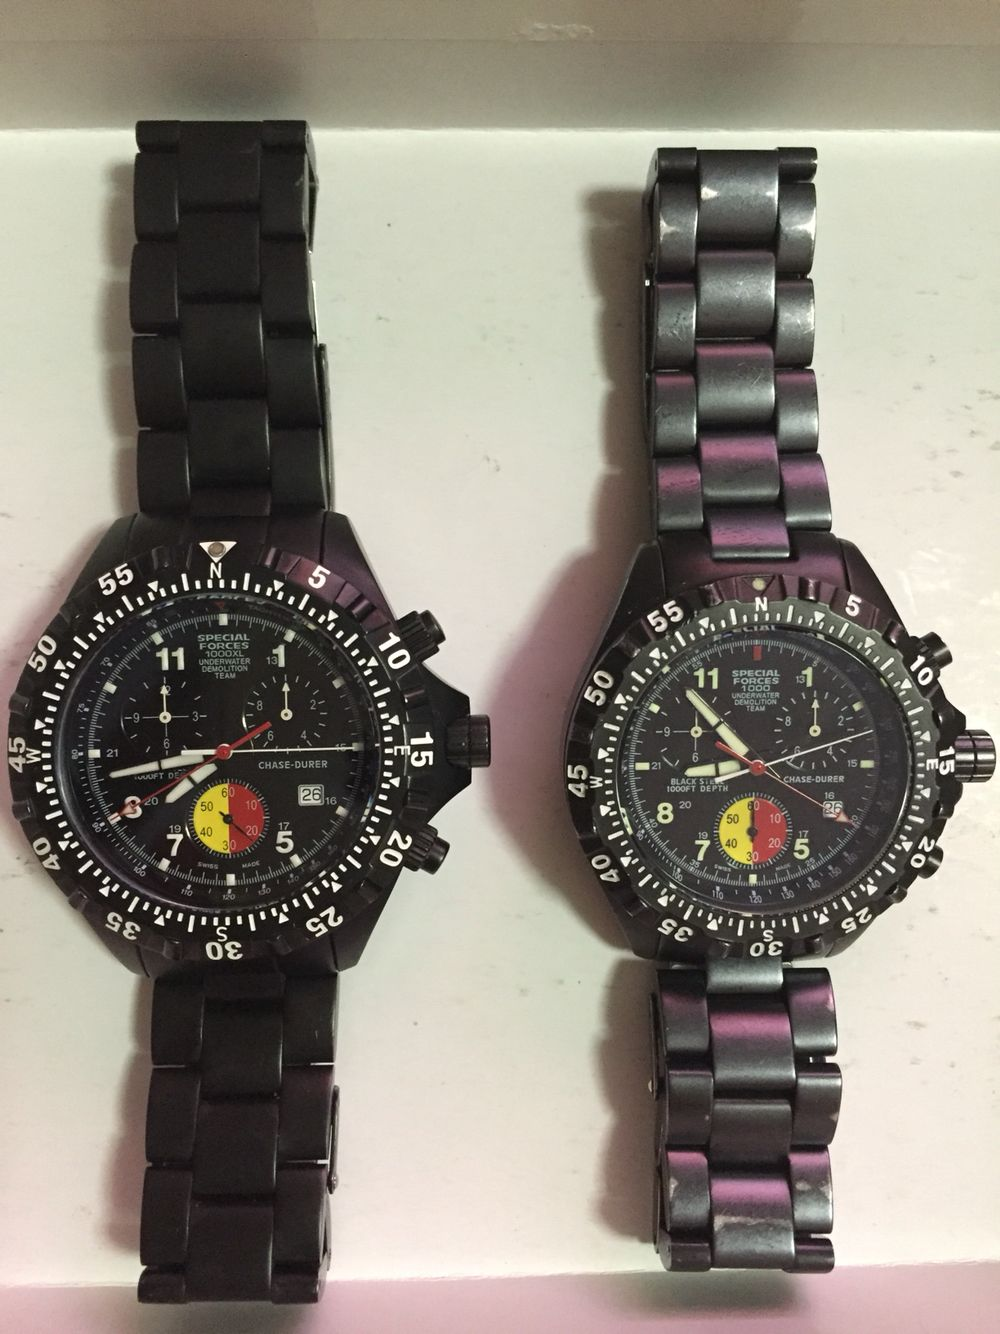 Chase Durer Special Forces 1000 UDT and 1000XL version. Both mine now.